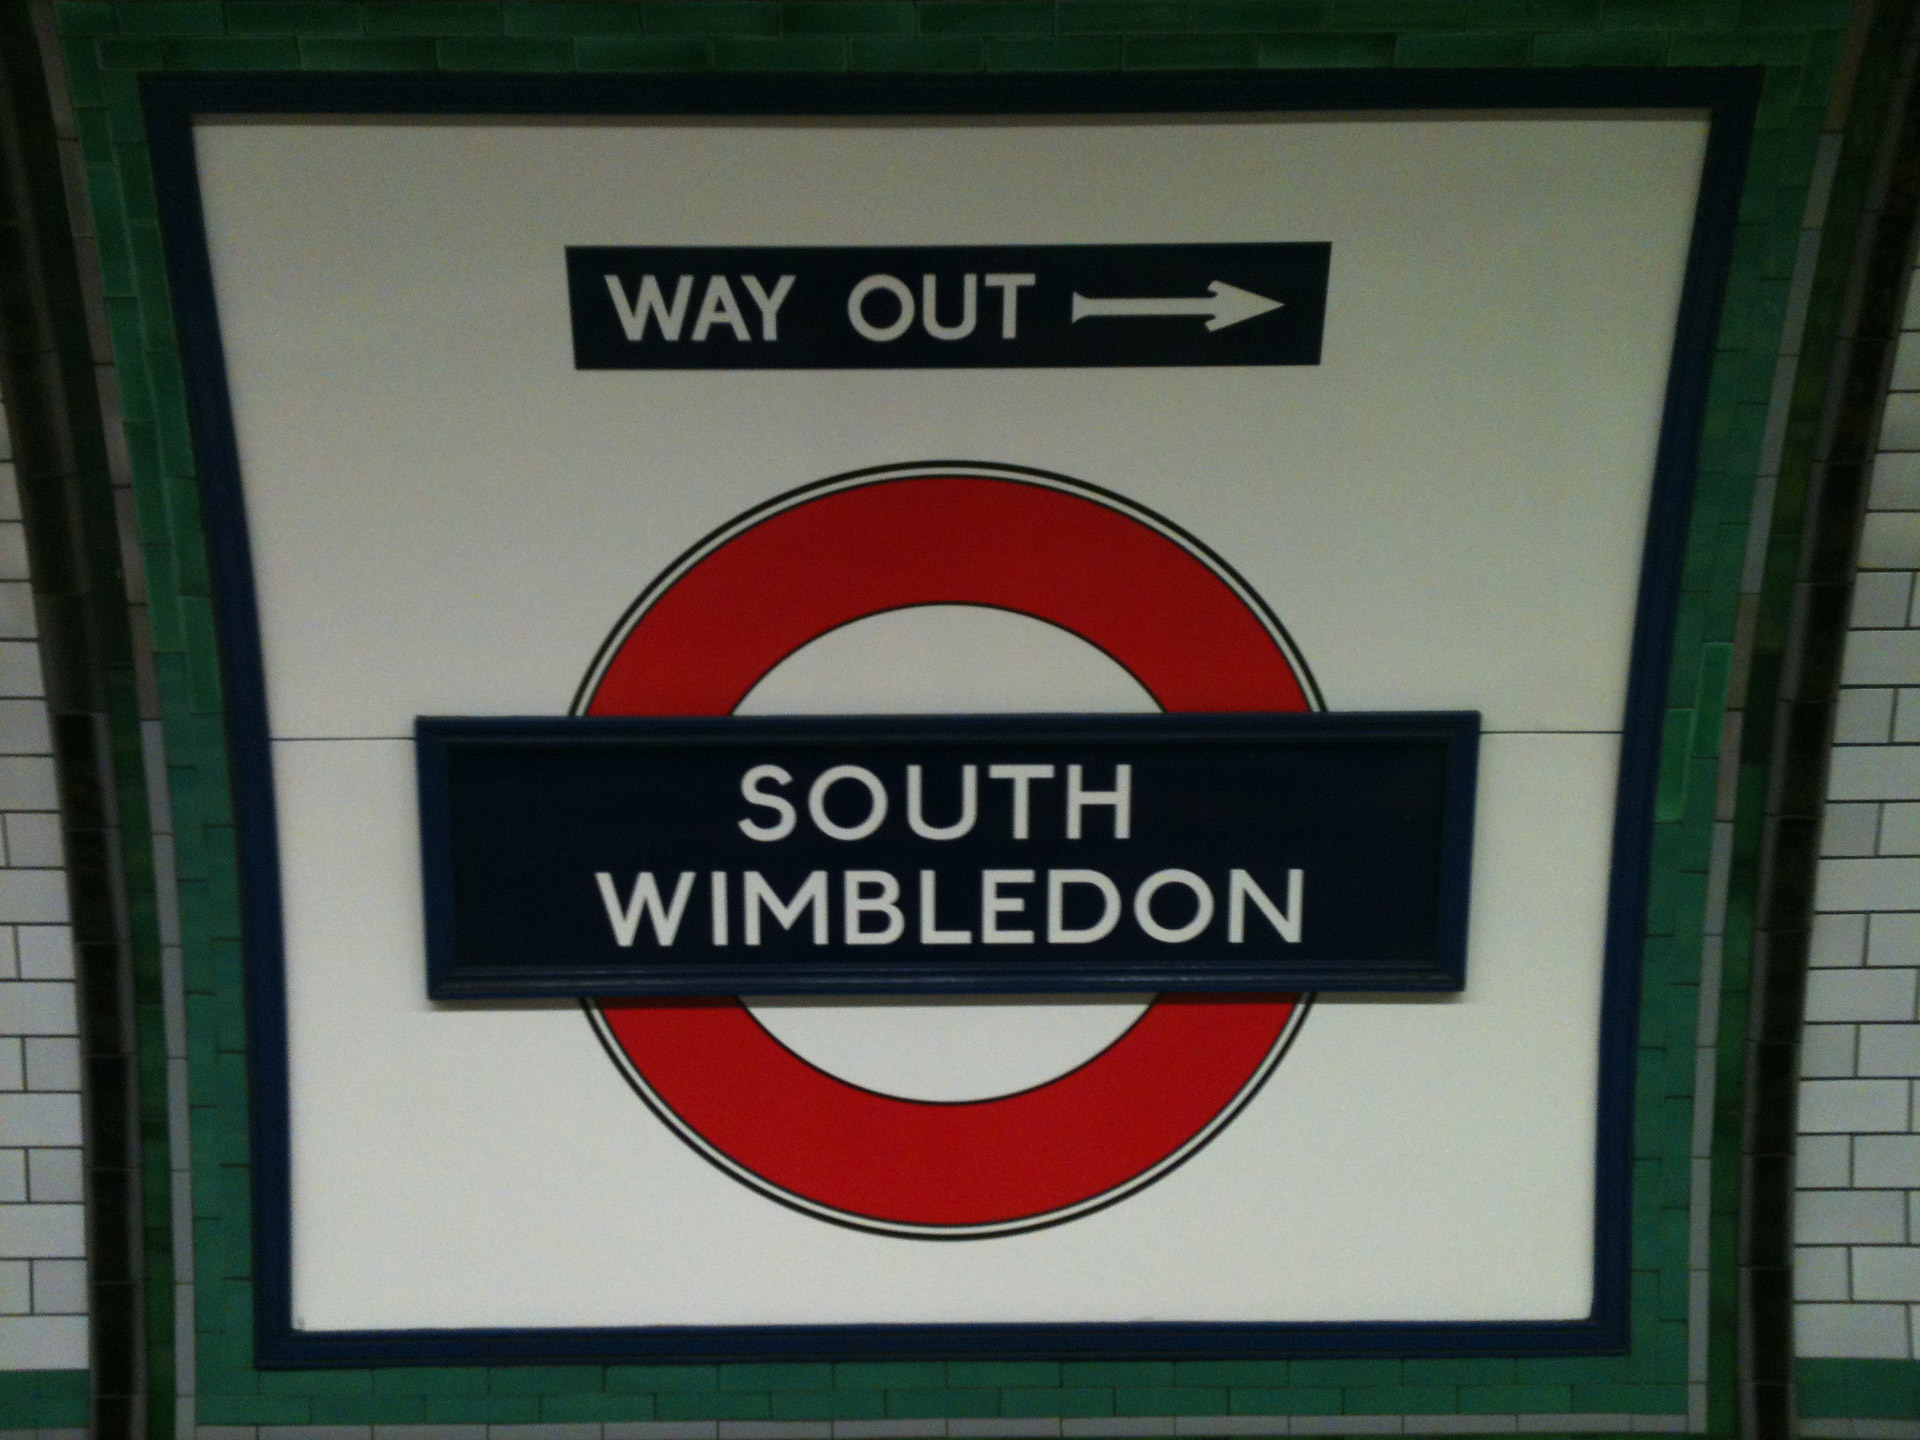 south wimbledon underground sign.